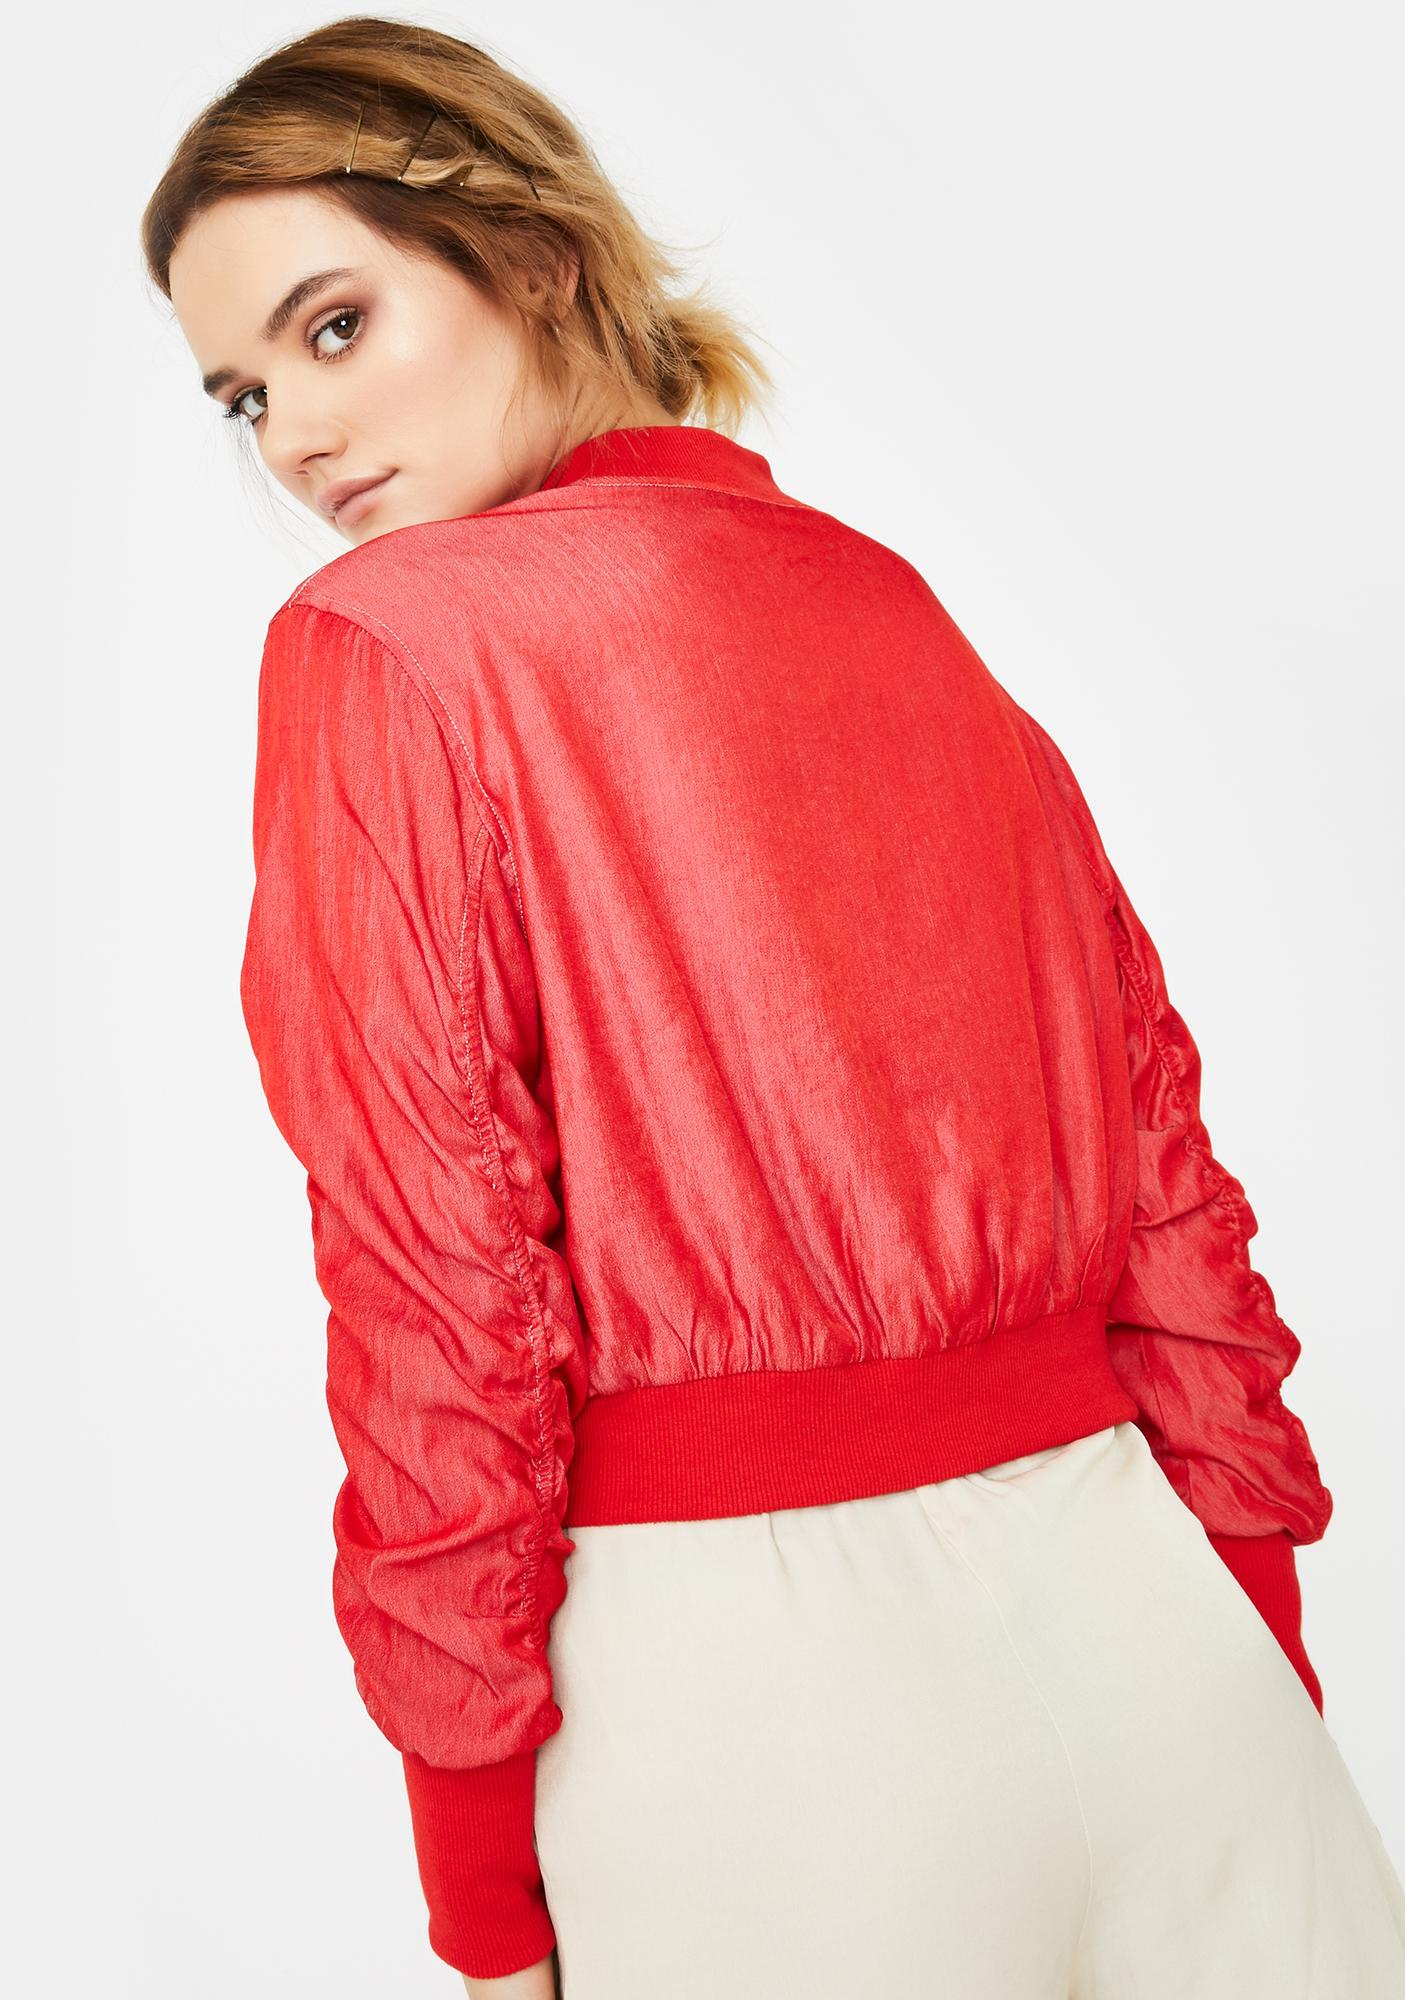 ZYA Cherry Horizon Bomber Jacket